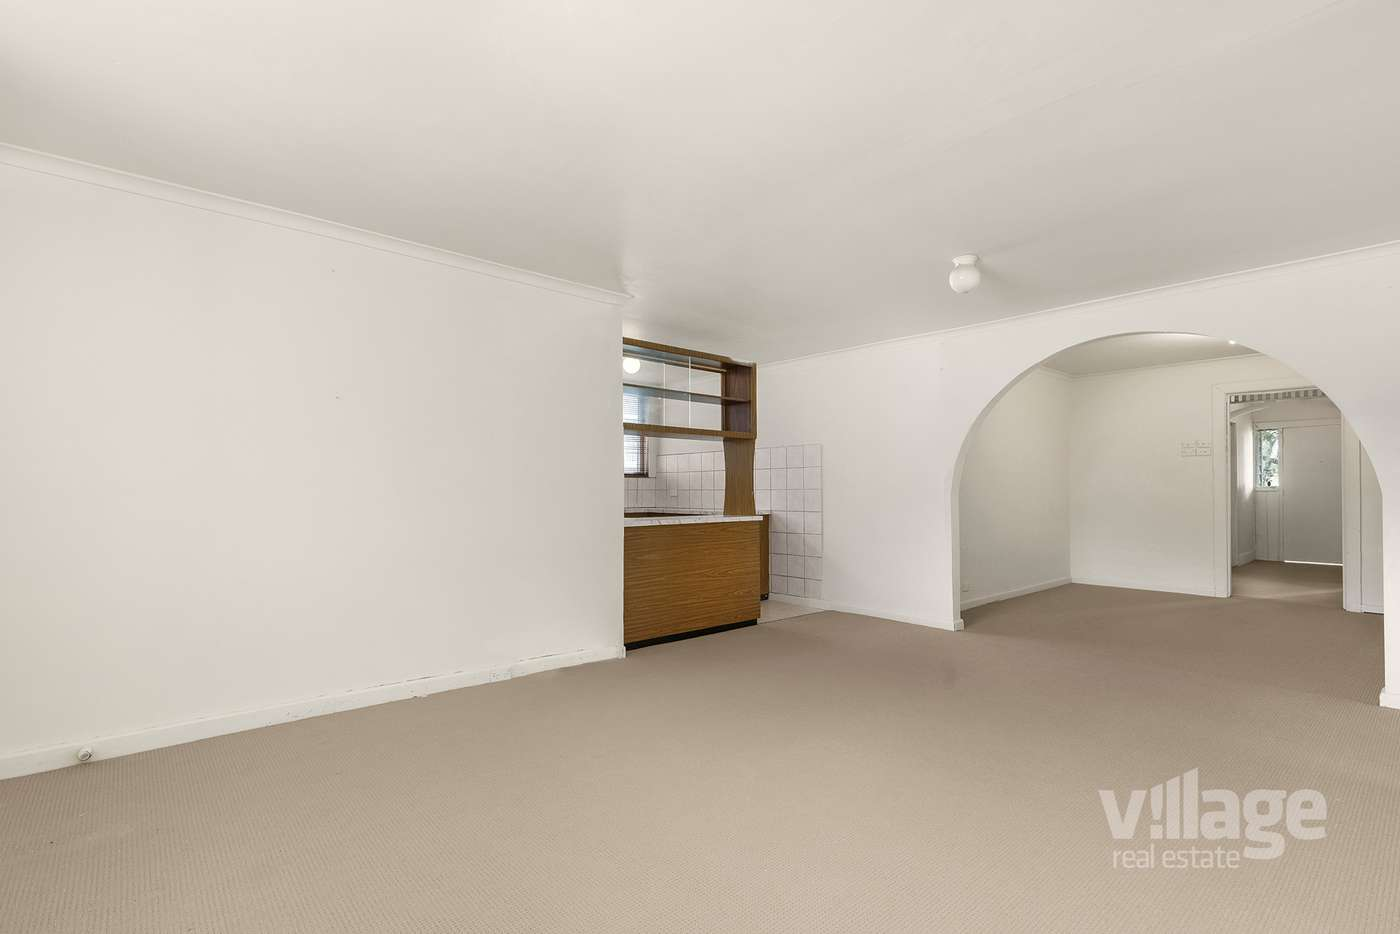 Main view of Homely house listing, 52 Powell Street, Yarraville VIC 3013